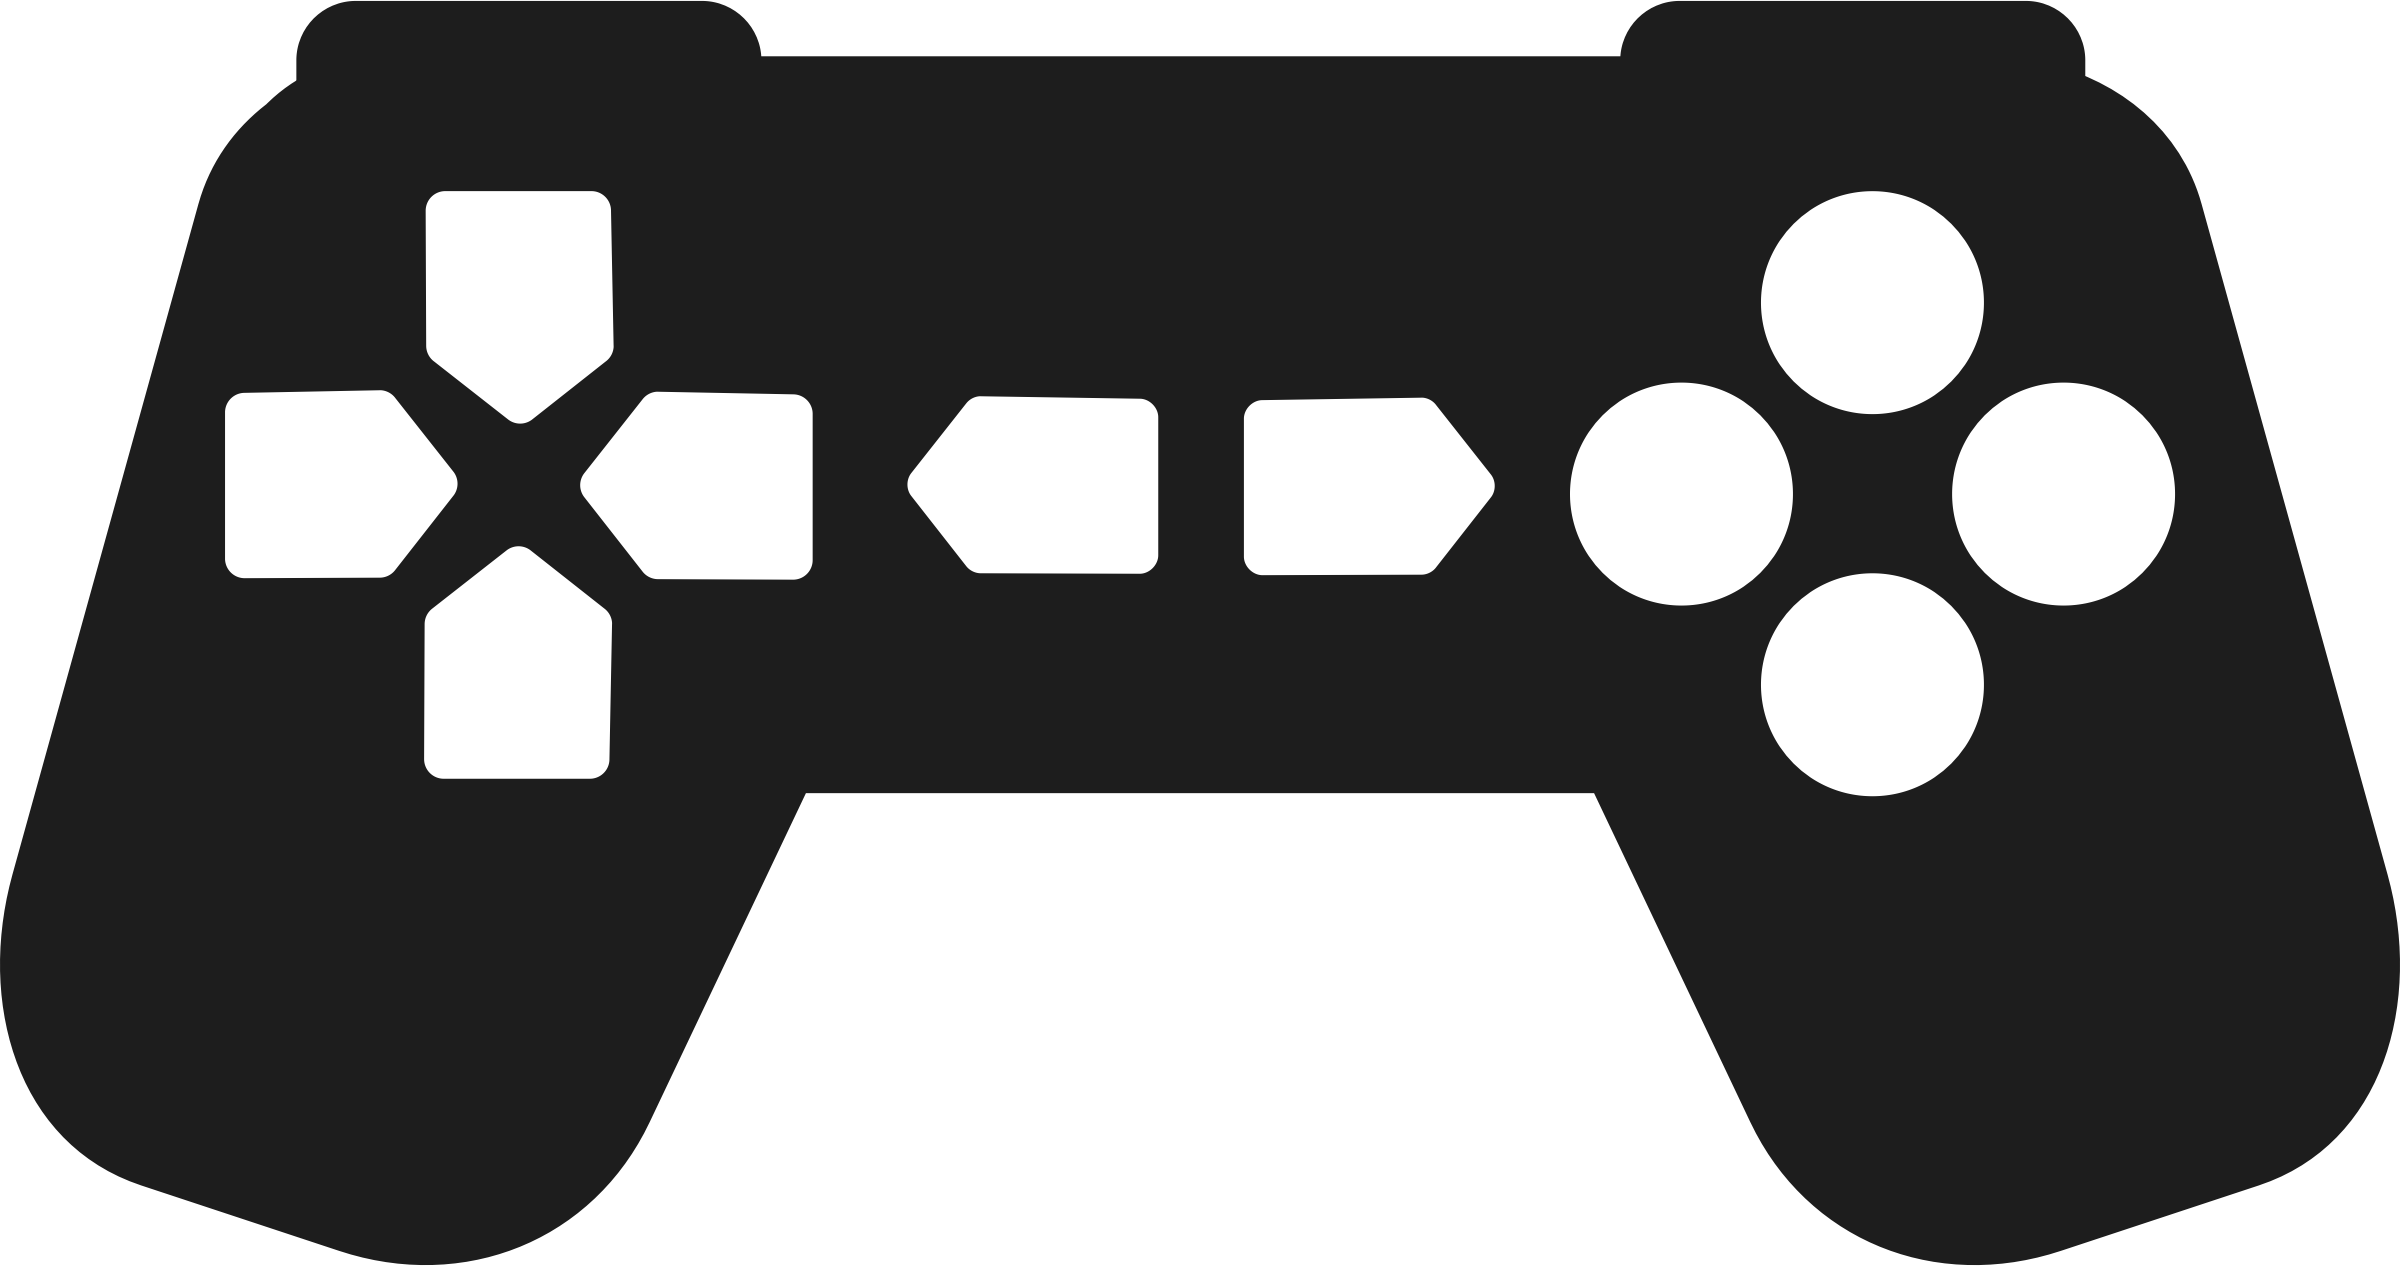 Game controller outline png. Gaming clipart joy stick